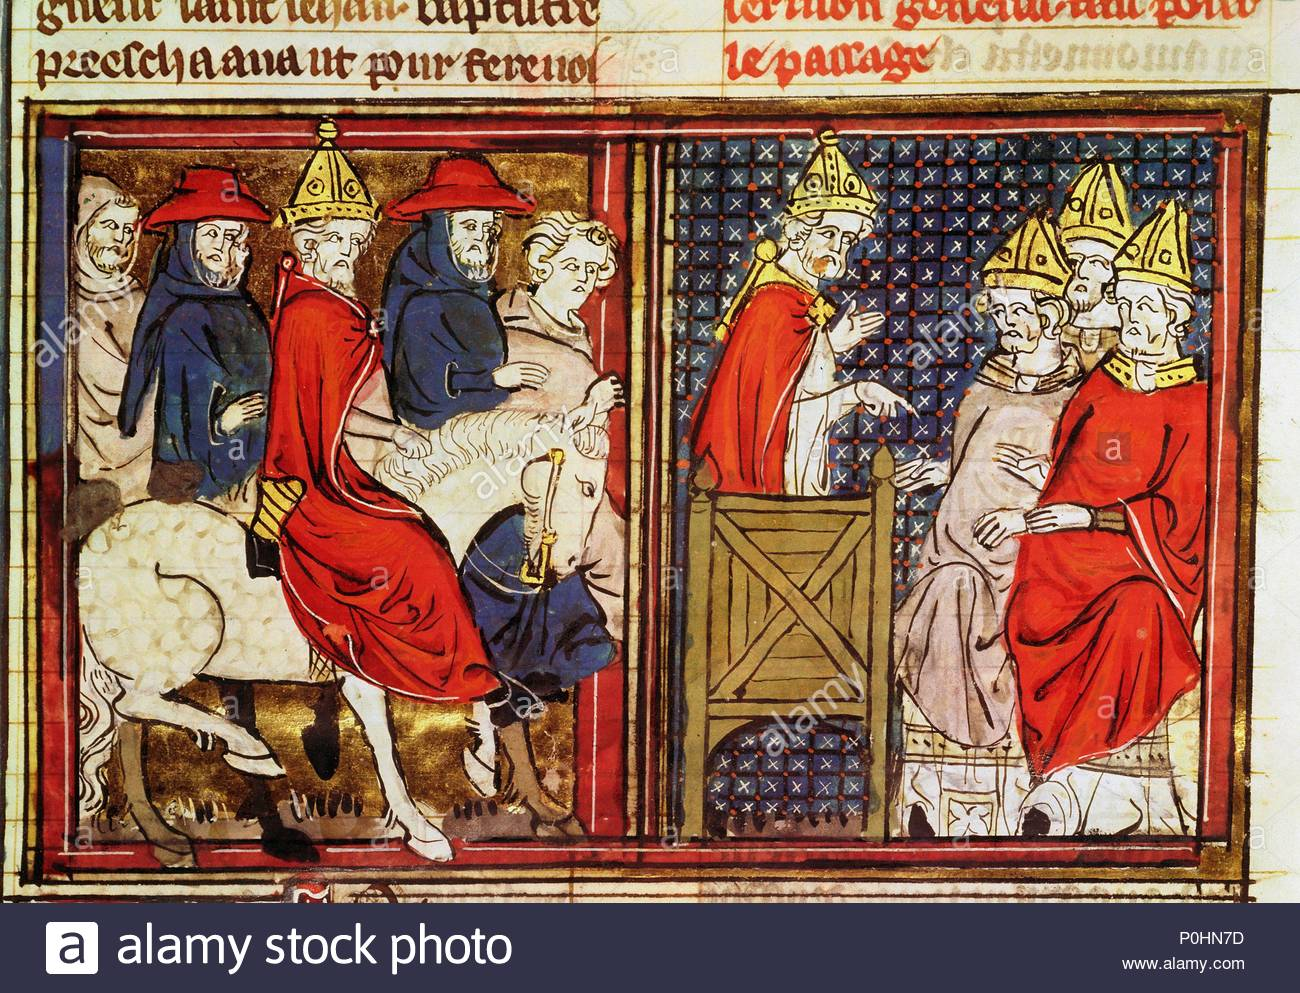 Arrival of Pope Urban II in France, for the Council of Clermont,1095. From the Roman de Godefroy de Bouillon, Ms 22495, fol.15 France,1337. Location: Bibliotheque Nat., Coll. des Manuscripts, Paris, France. Stock Photo